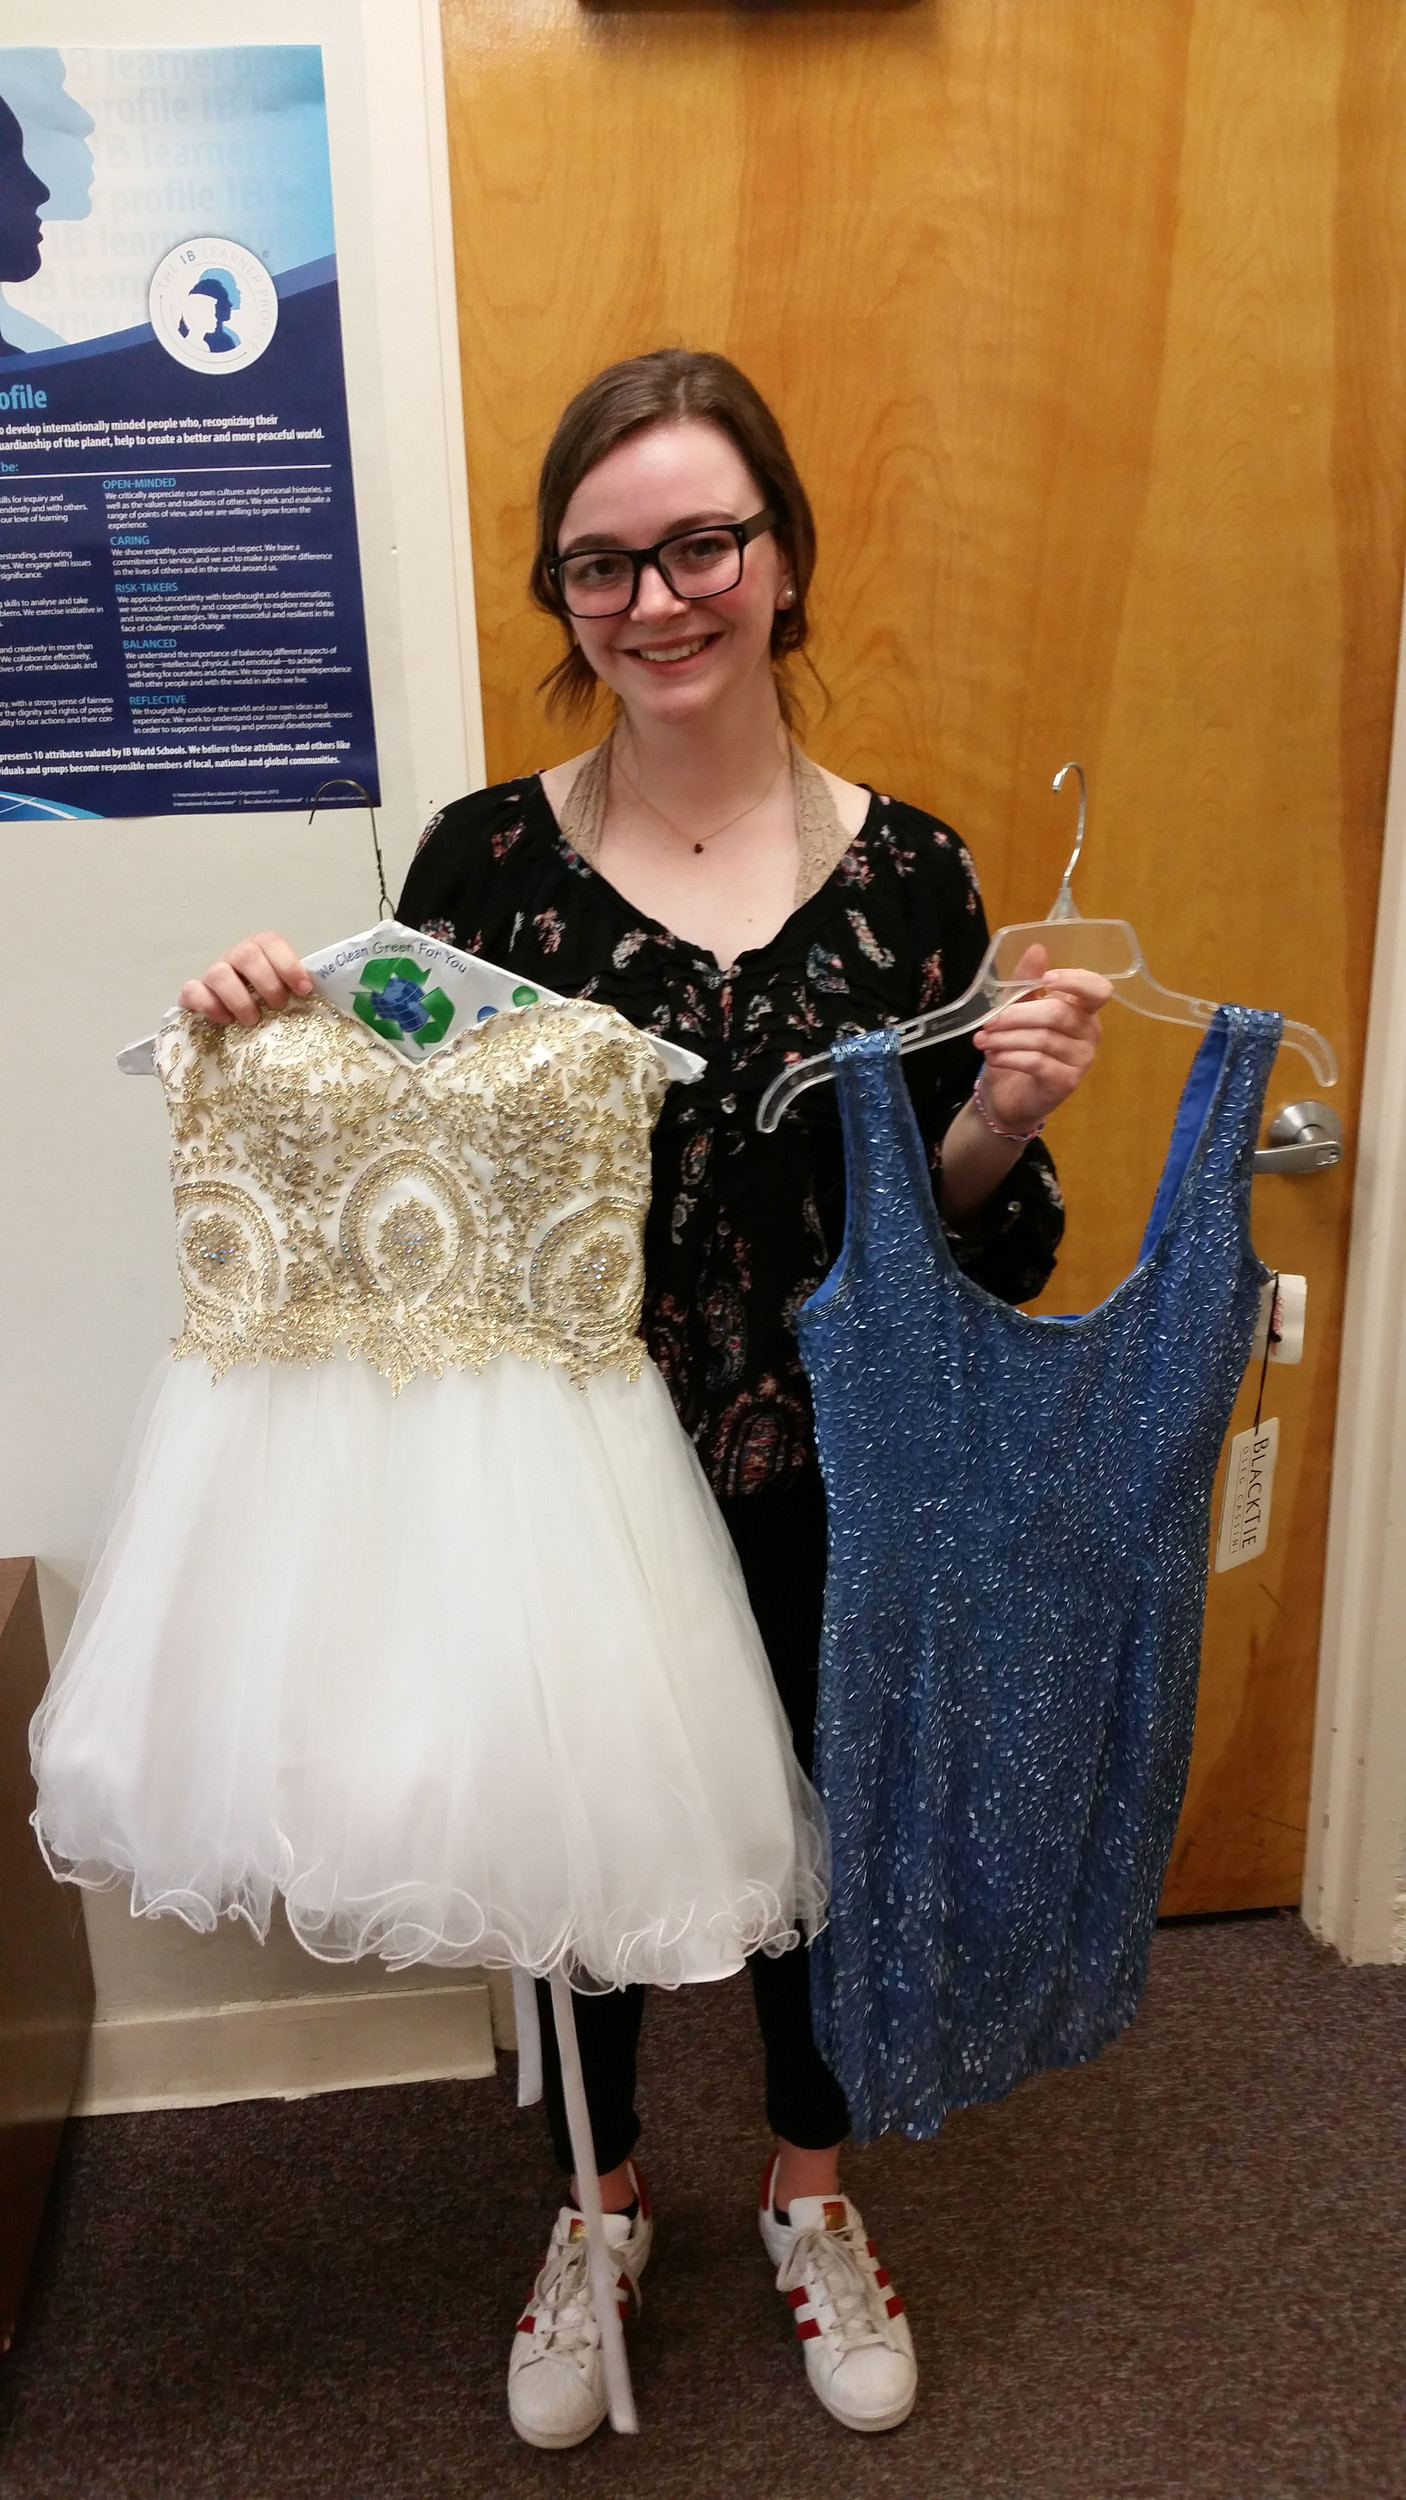 Siobhan Esposito, 17, of Sea Cliff, said all young women deserve to have their own prom dresses.